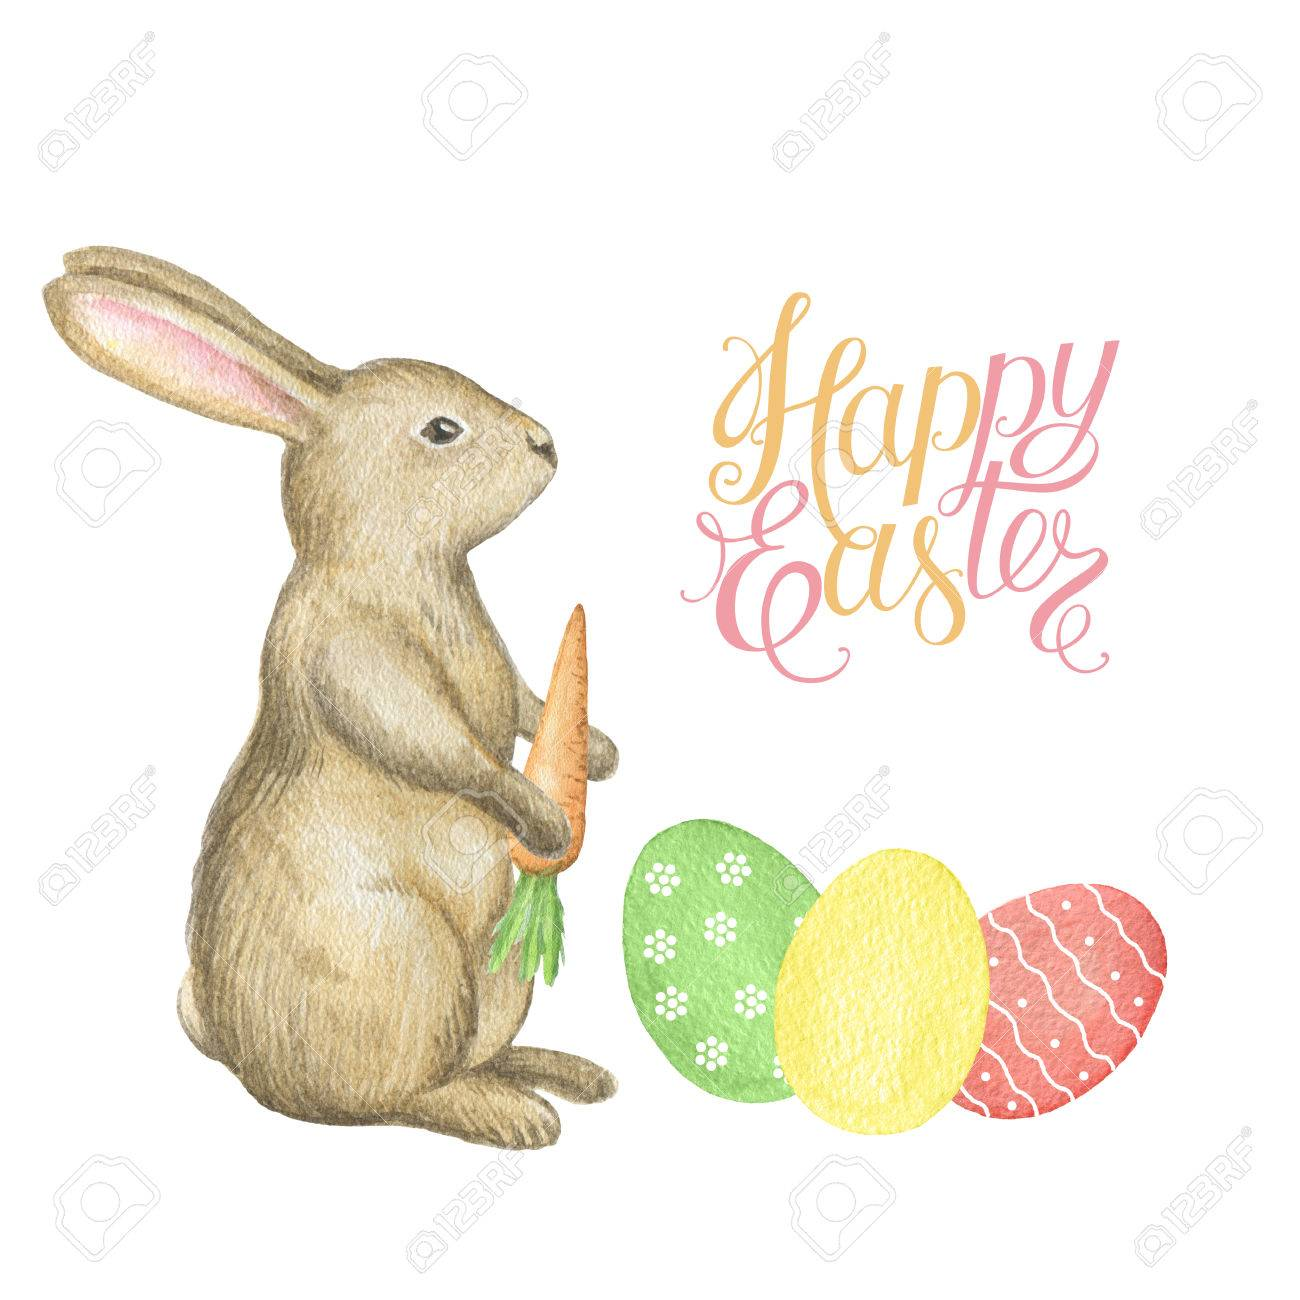 Happy easter watercolor rabbit eggs and a letter template for happy easter watercolor rabbit eggs and a letter template for greeting cards and invitations spiritdancerdesigns Image collections